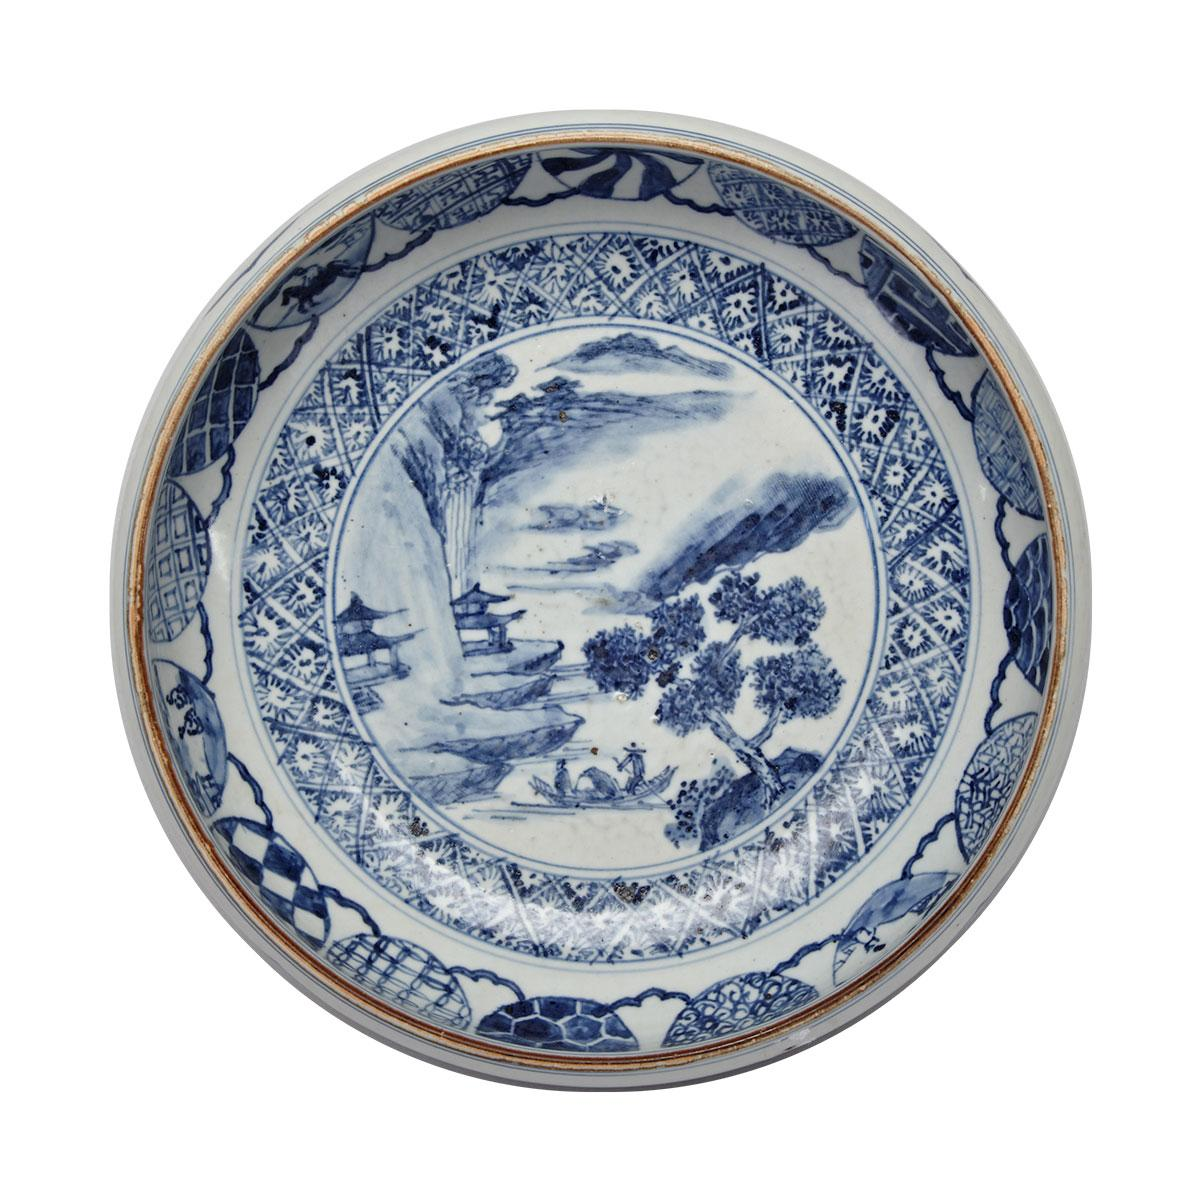 Blue and White Landscape Bowl, 19th Century